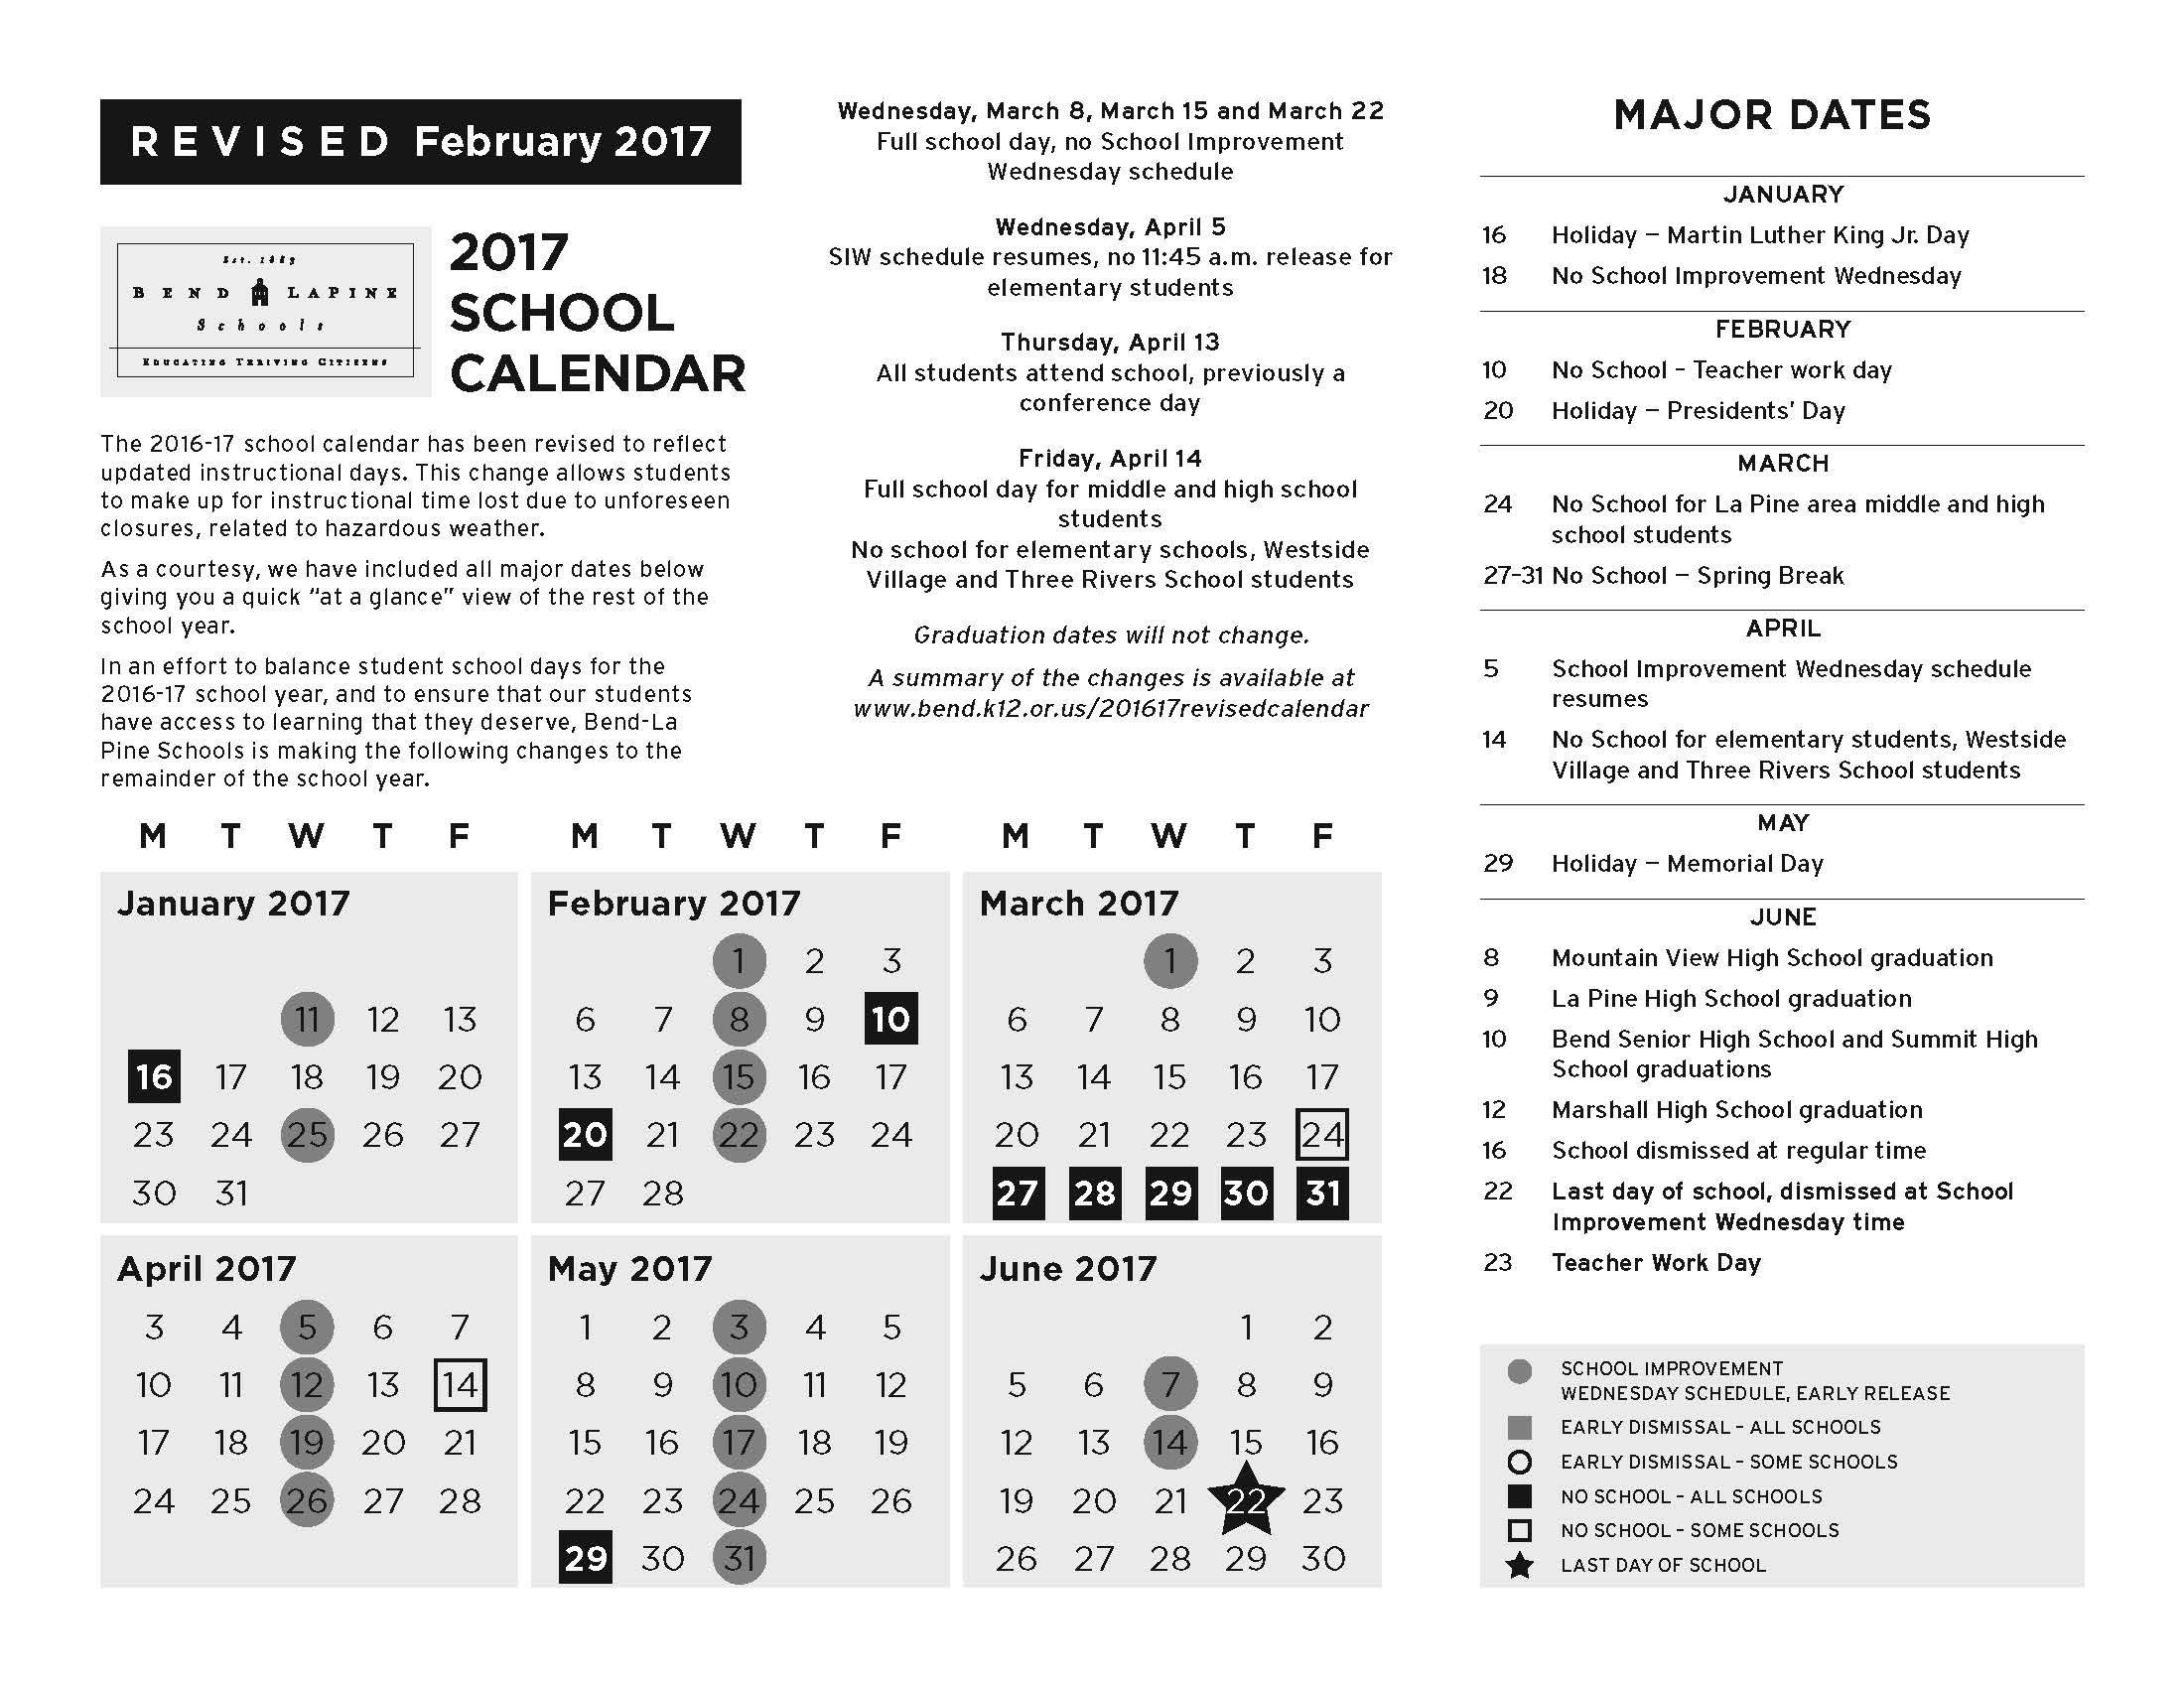 Revised Calendar for 2016-17 School Year